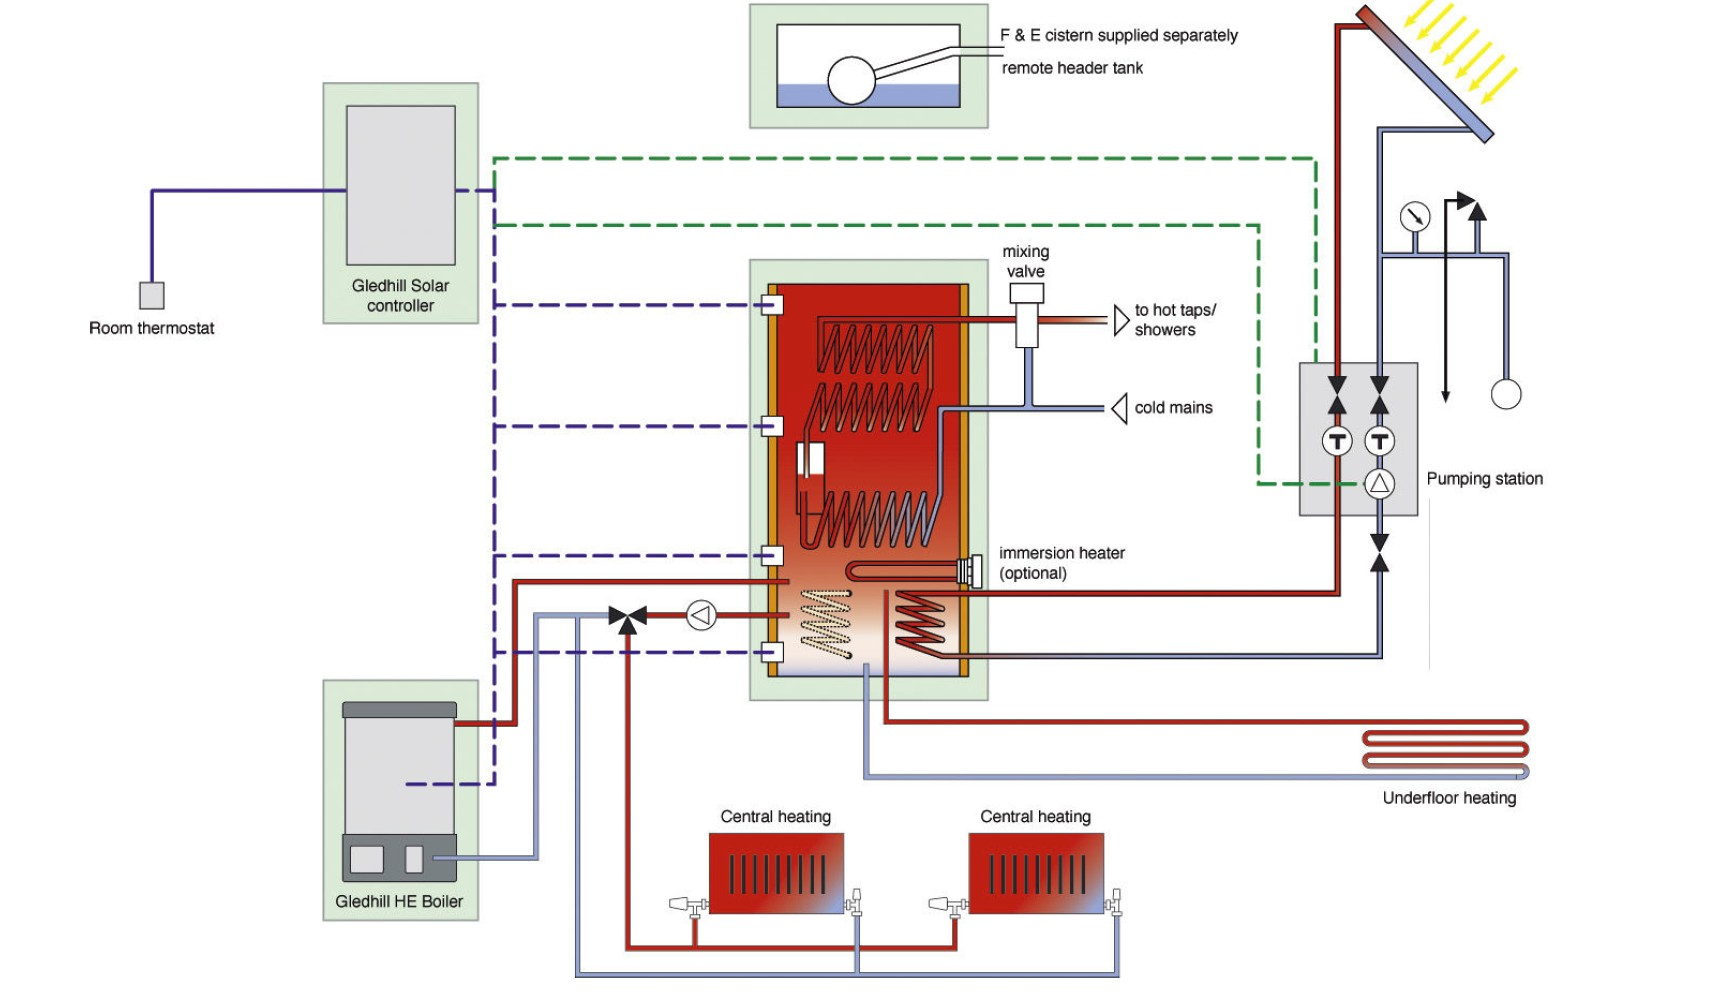 central heating mid position valve wiring diagram swm 32 multiswitch on boiler controls